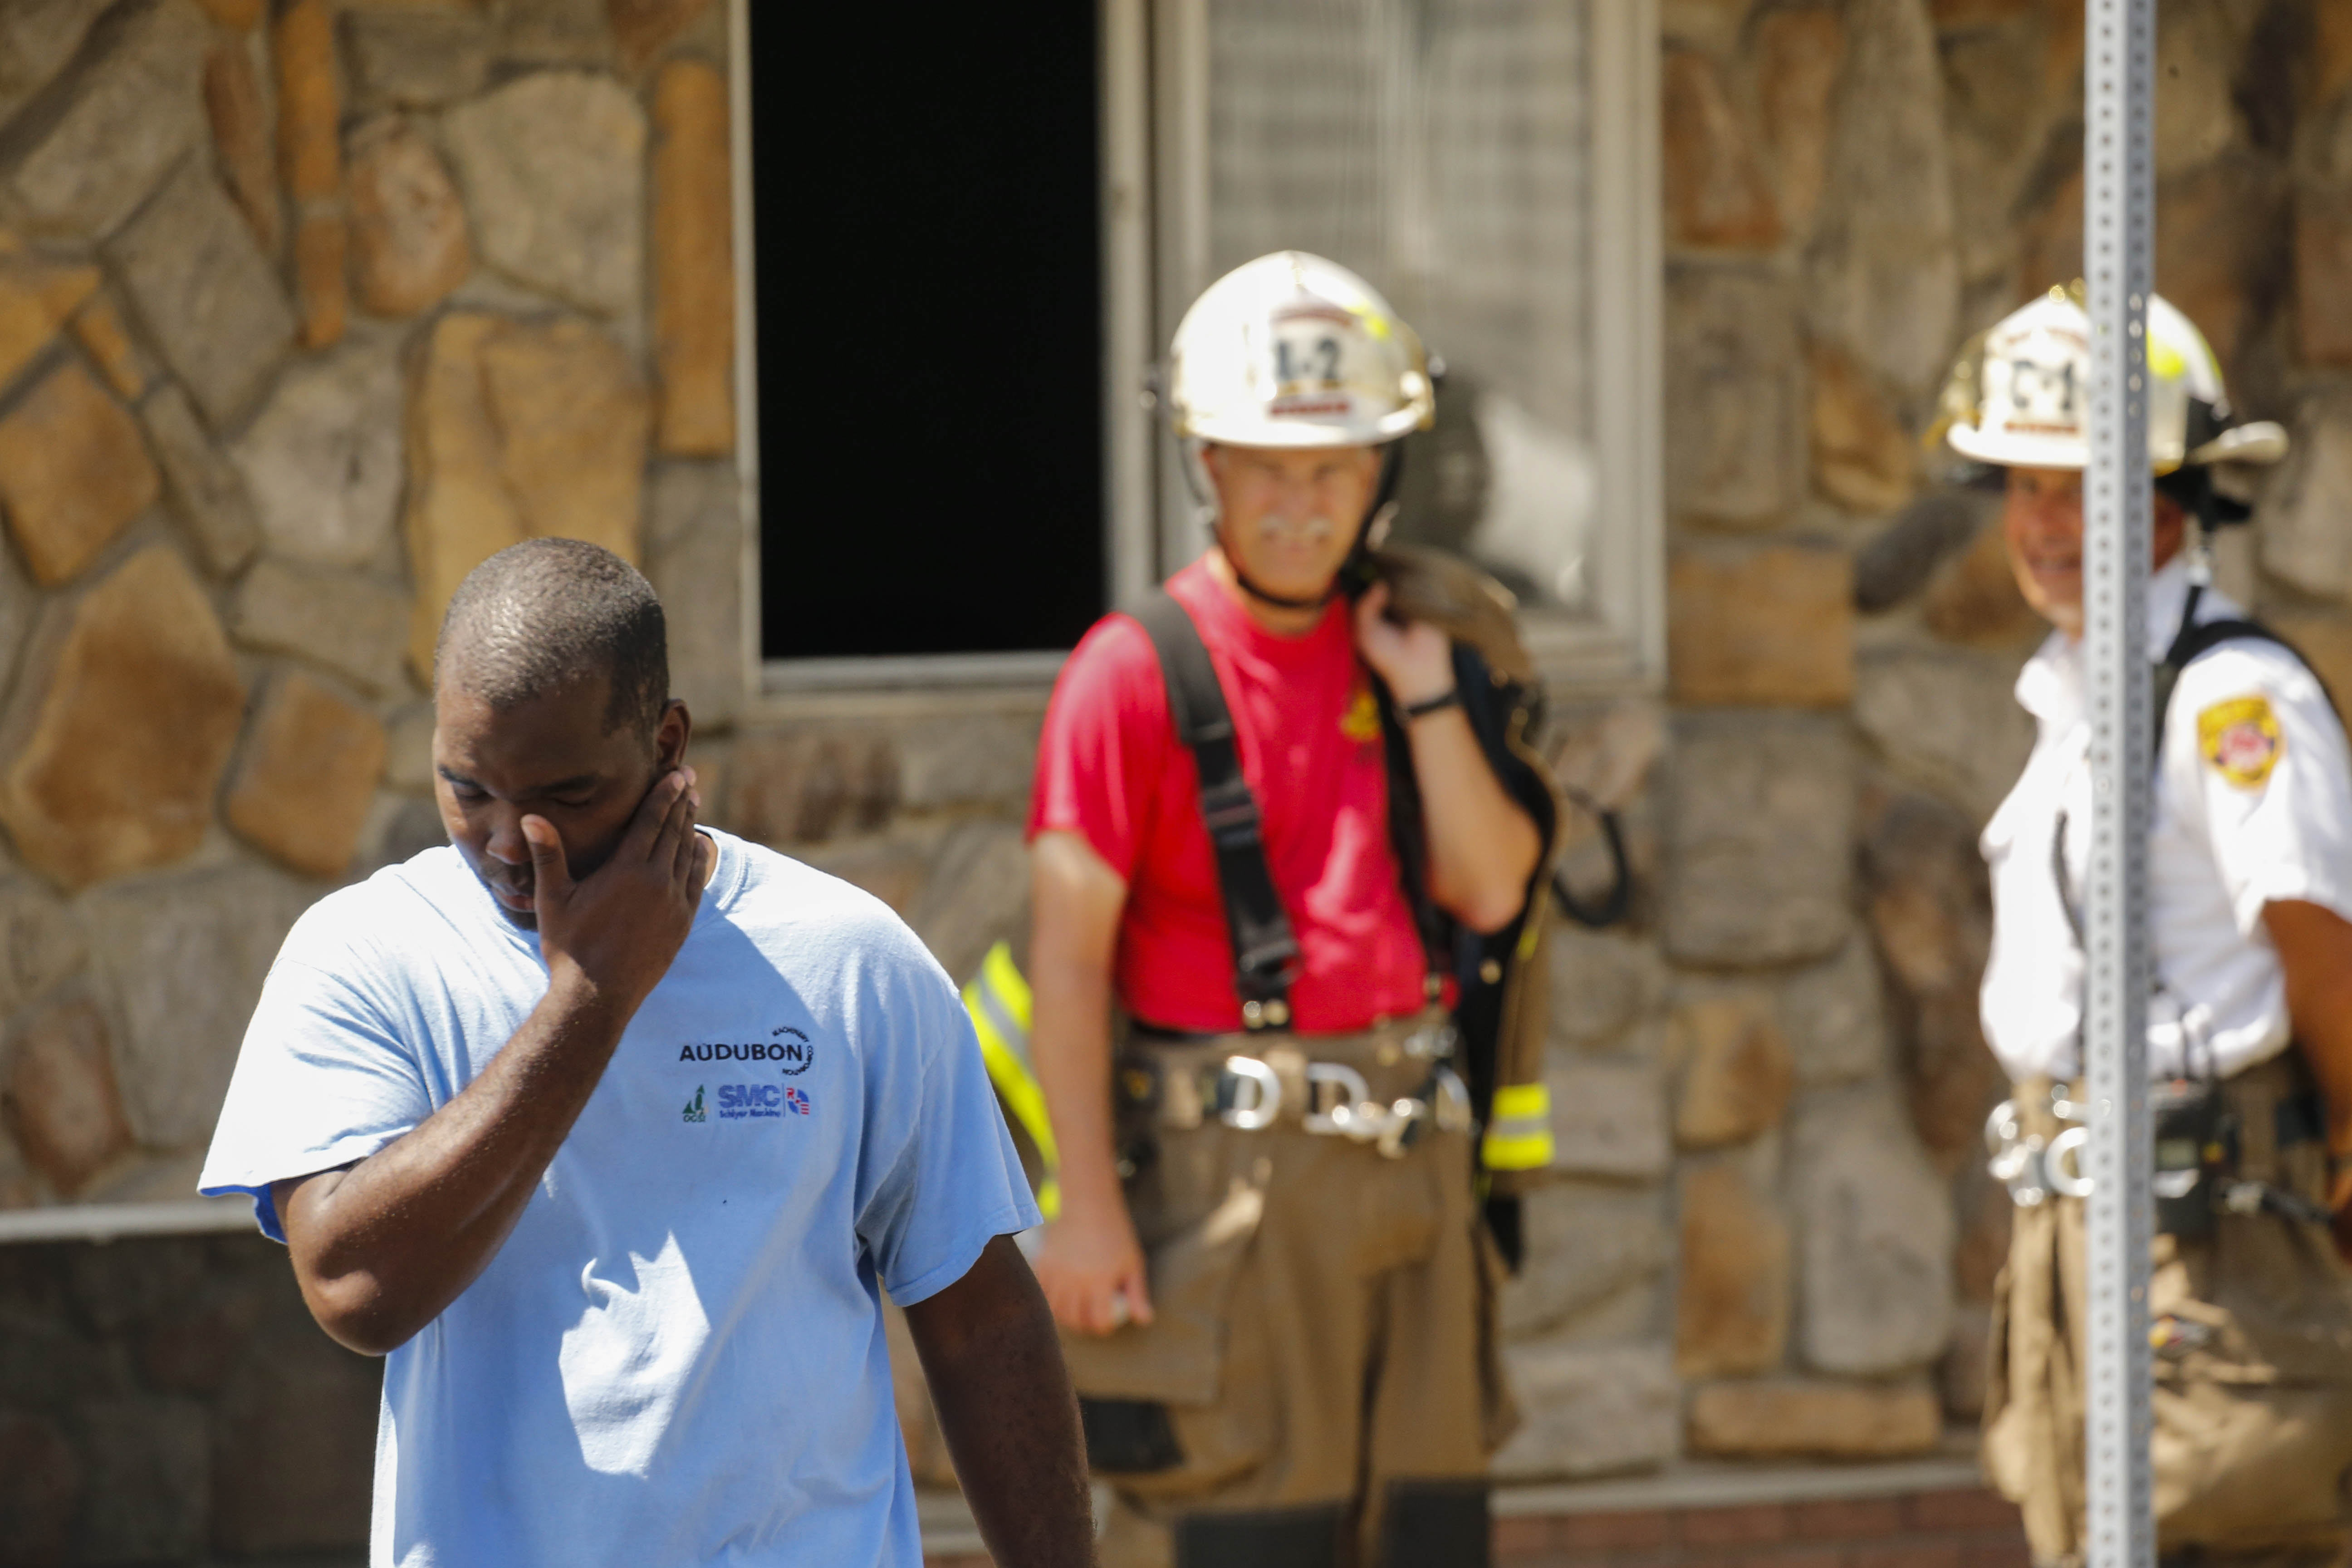 Kenneth Walker reacts as North Tonawanda Police and Fire officials investigate the scene of a fire that occurred in his home at Oliver and Felton, Wednesday, Aug. 3, 2016.  Walker recently received a threatening letter asking him to leave the Gratwick Hose fire department where he is the only black member.  (Photo by Derek Gee)